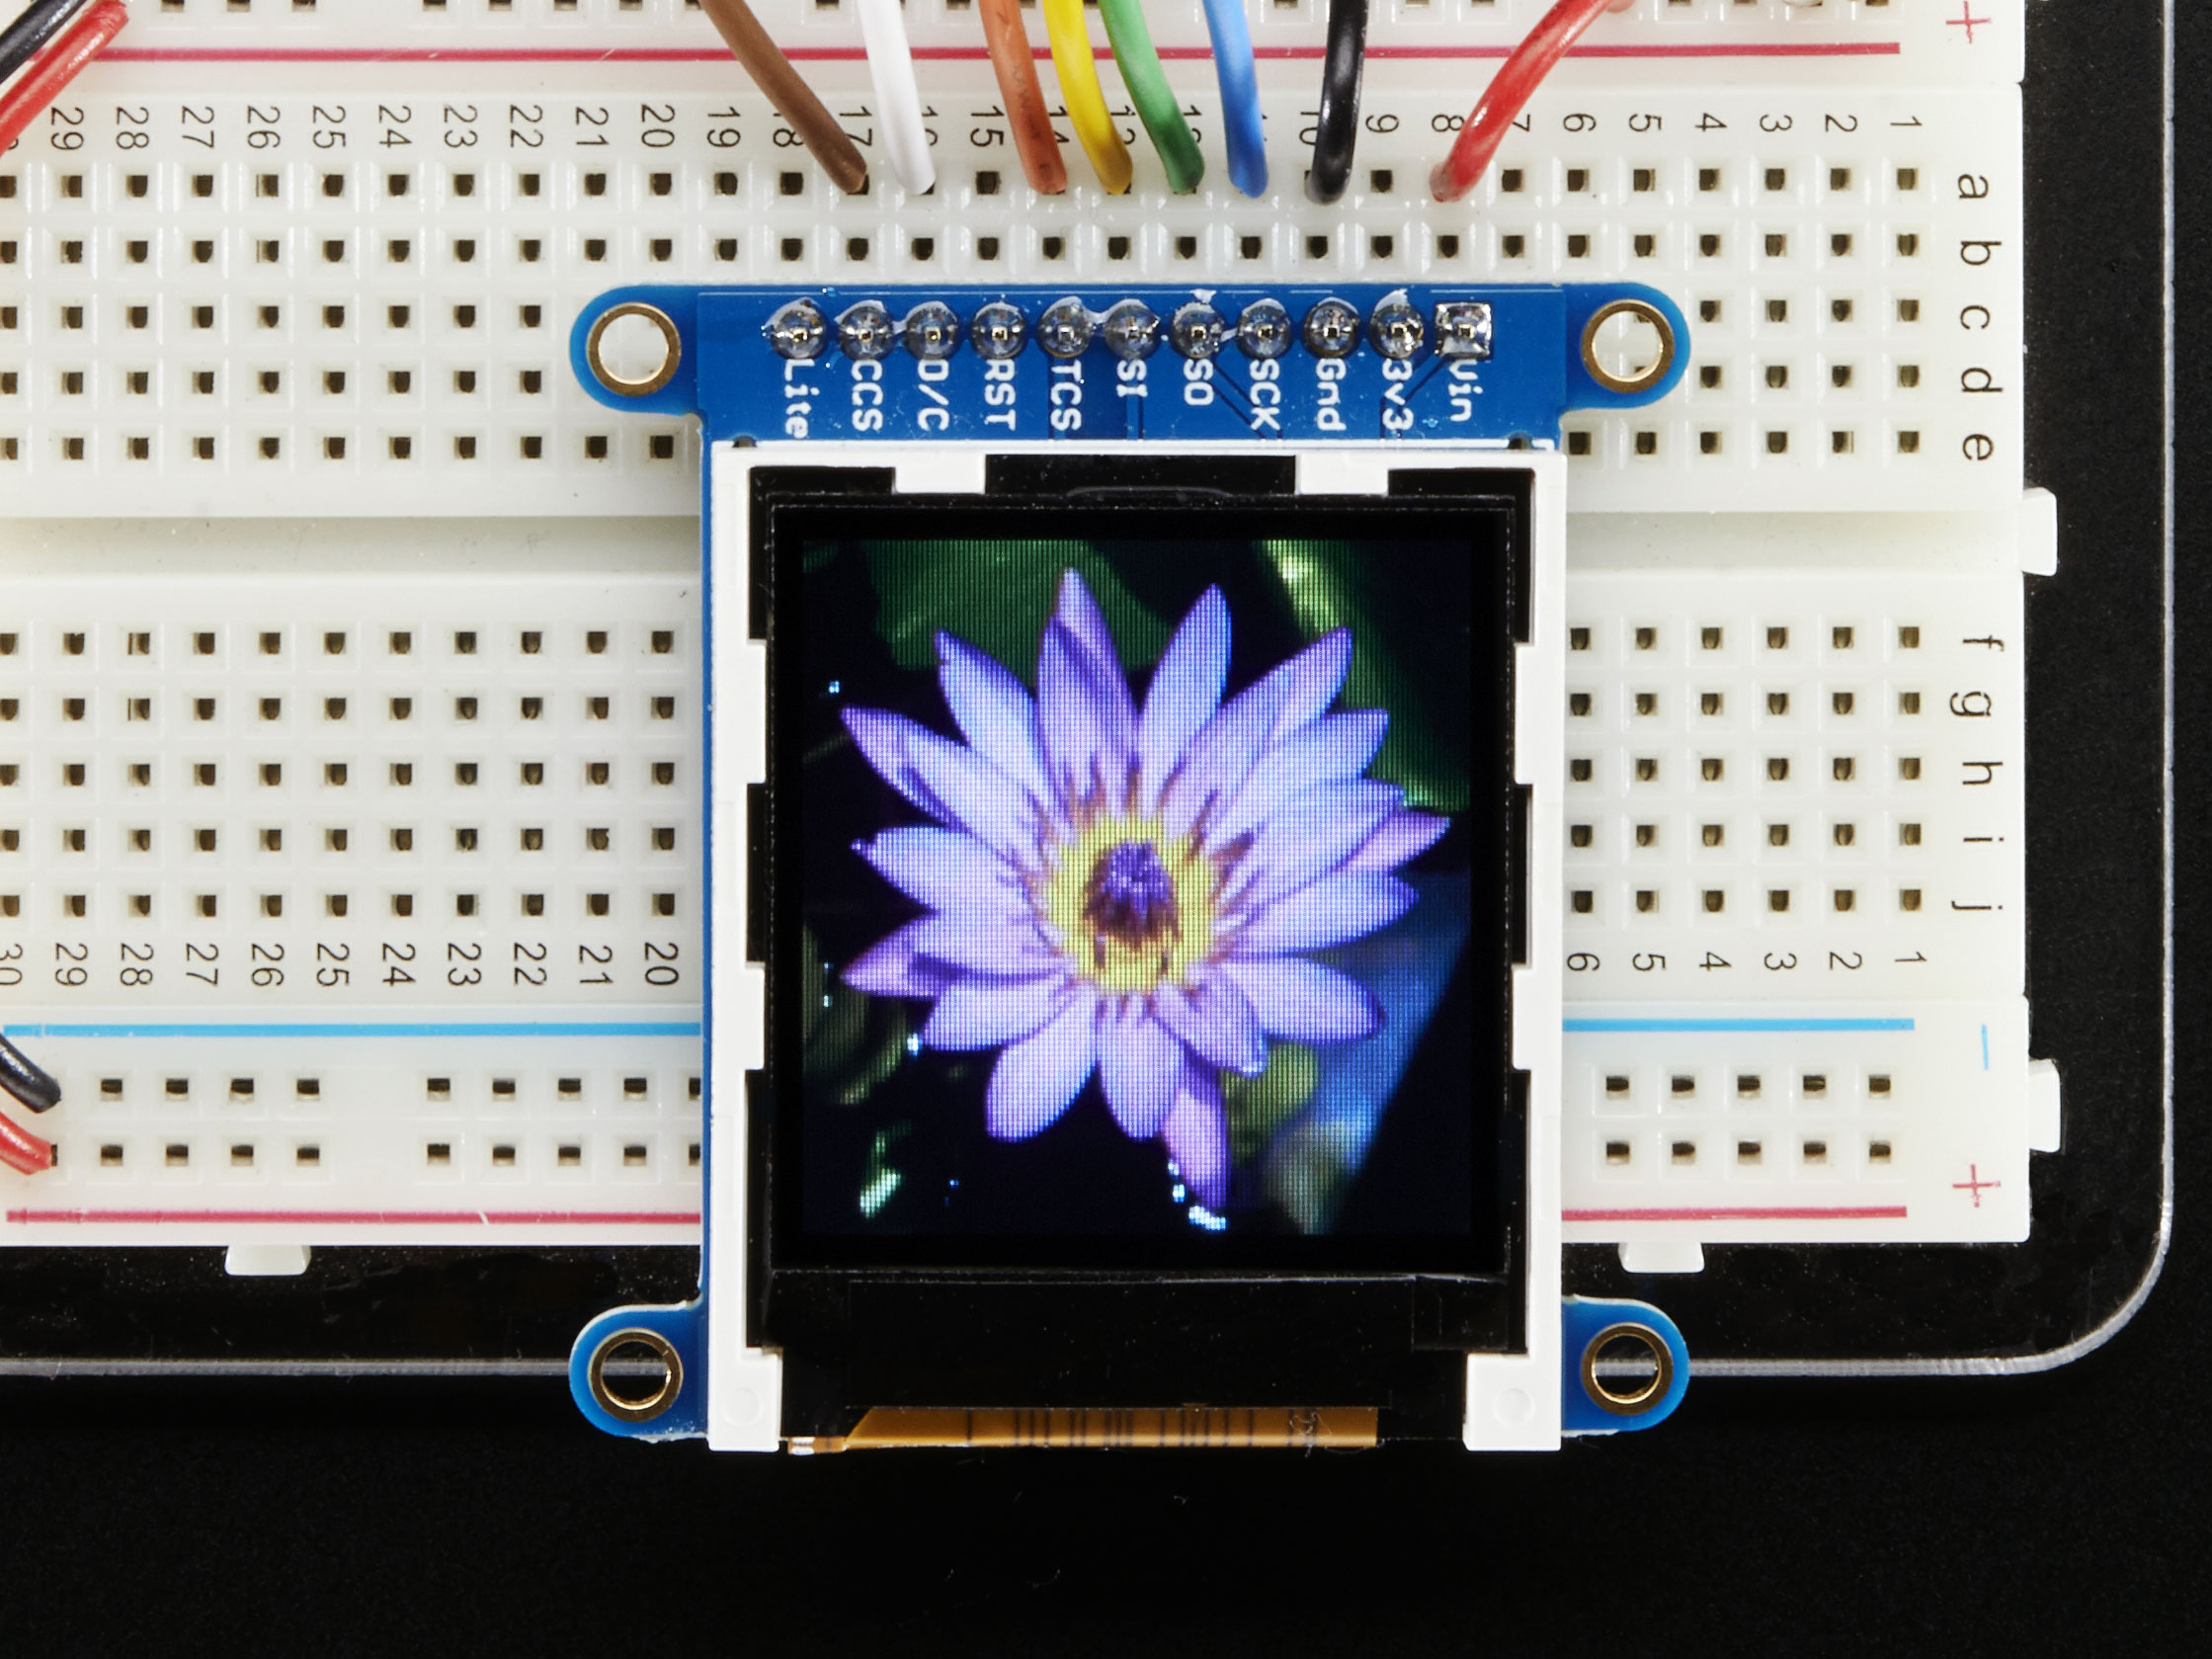 adafruit_products_lily.jpg